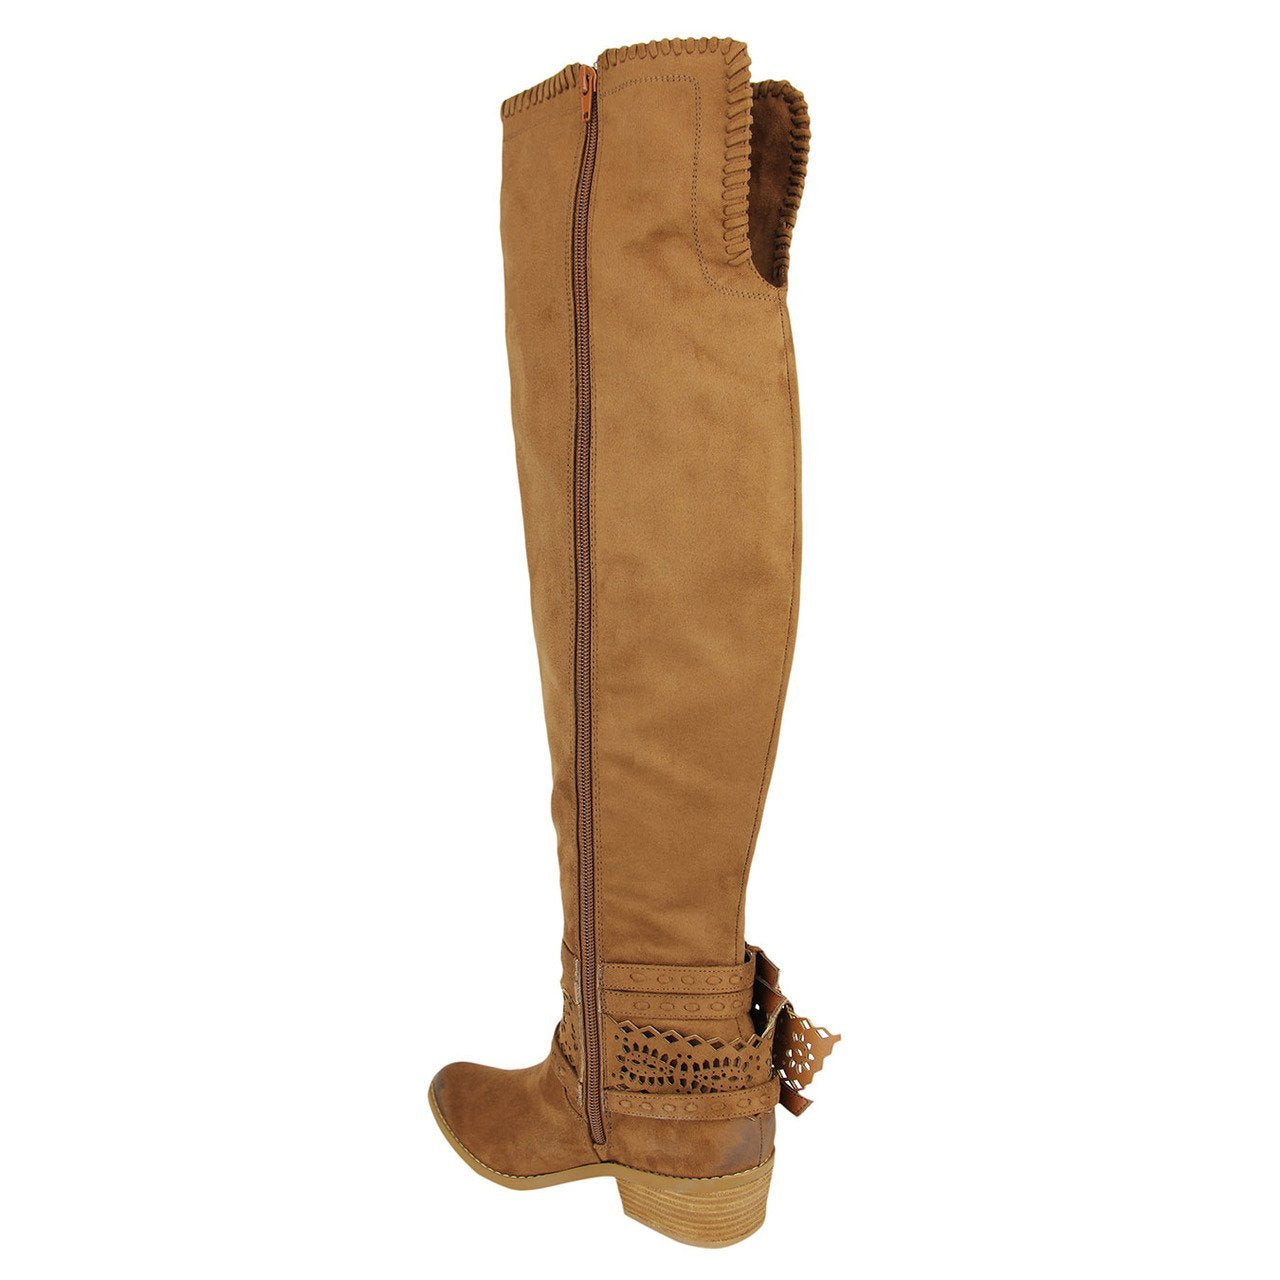 Over the knee tan boots with harness detail back view.